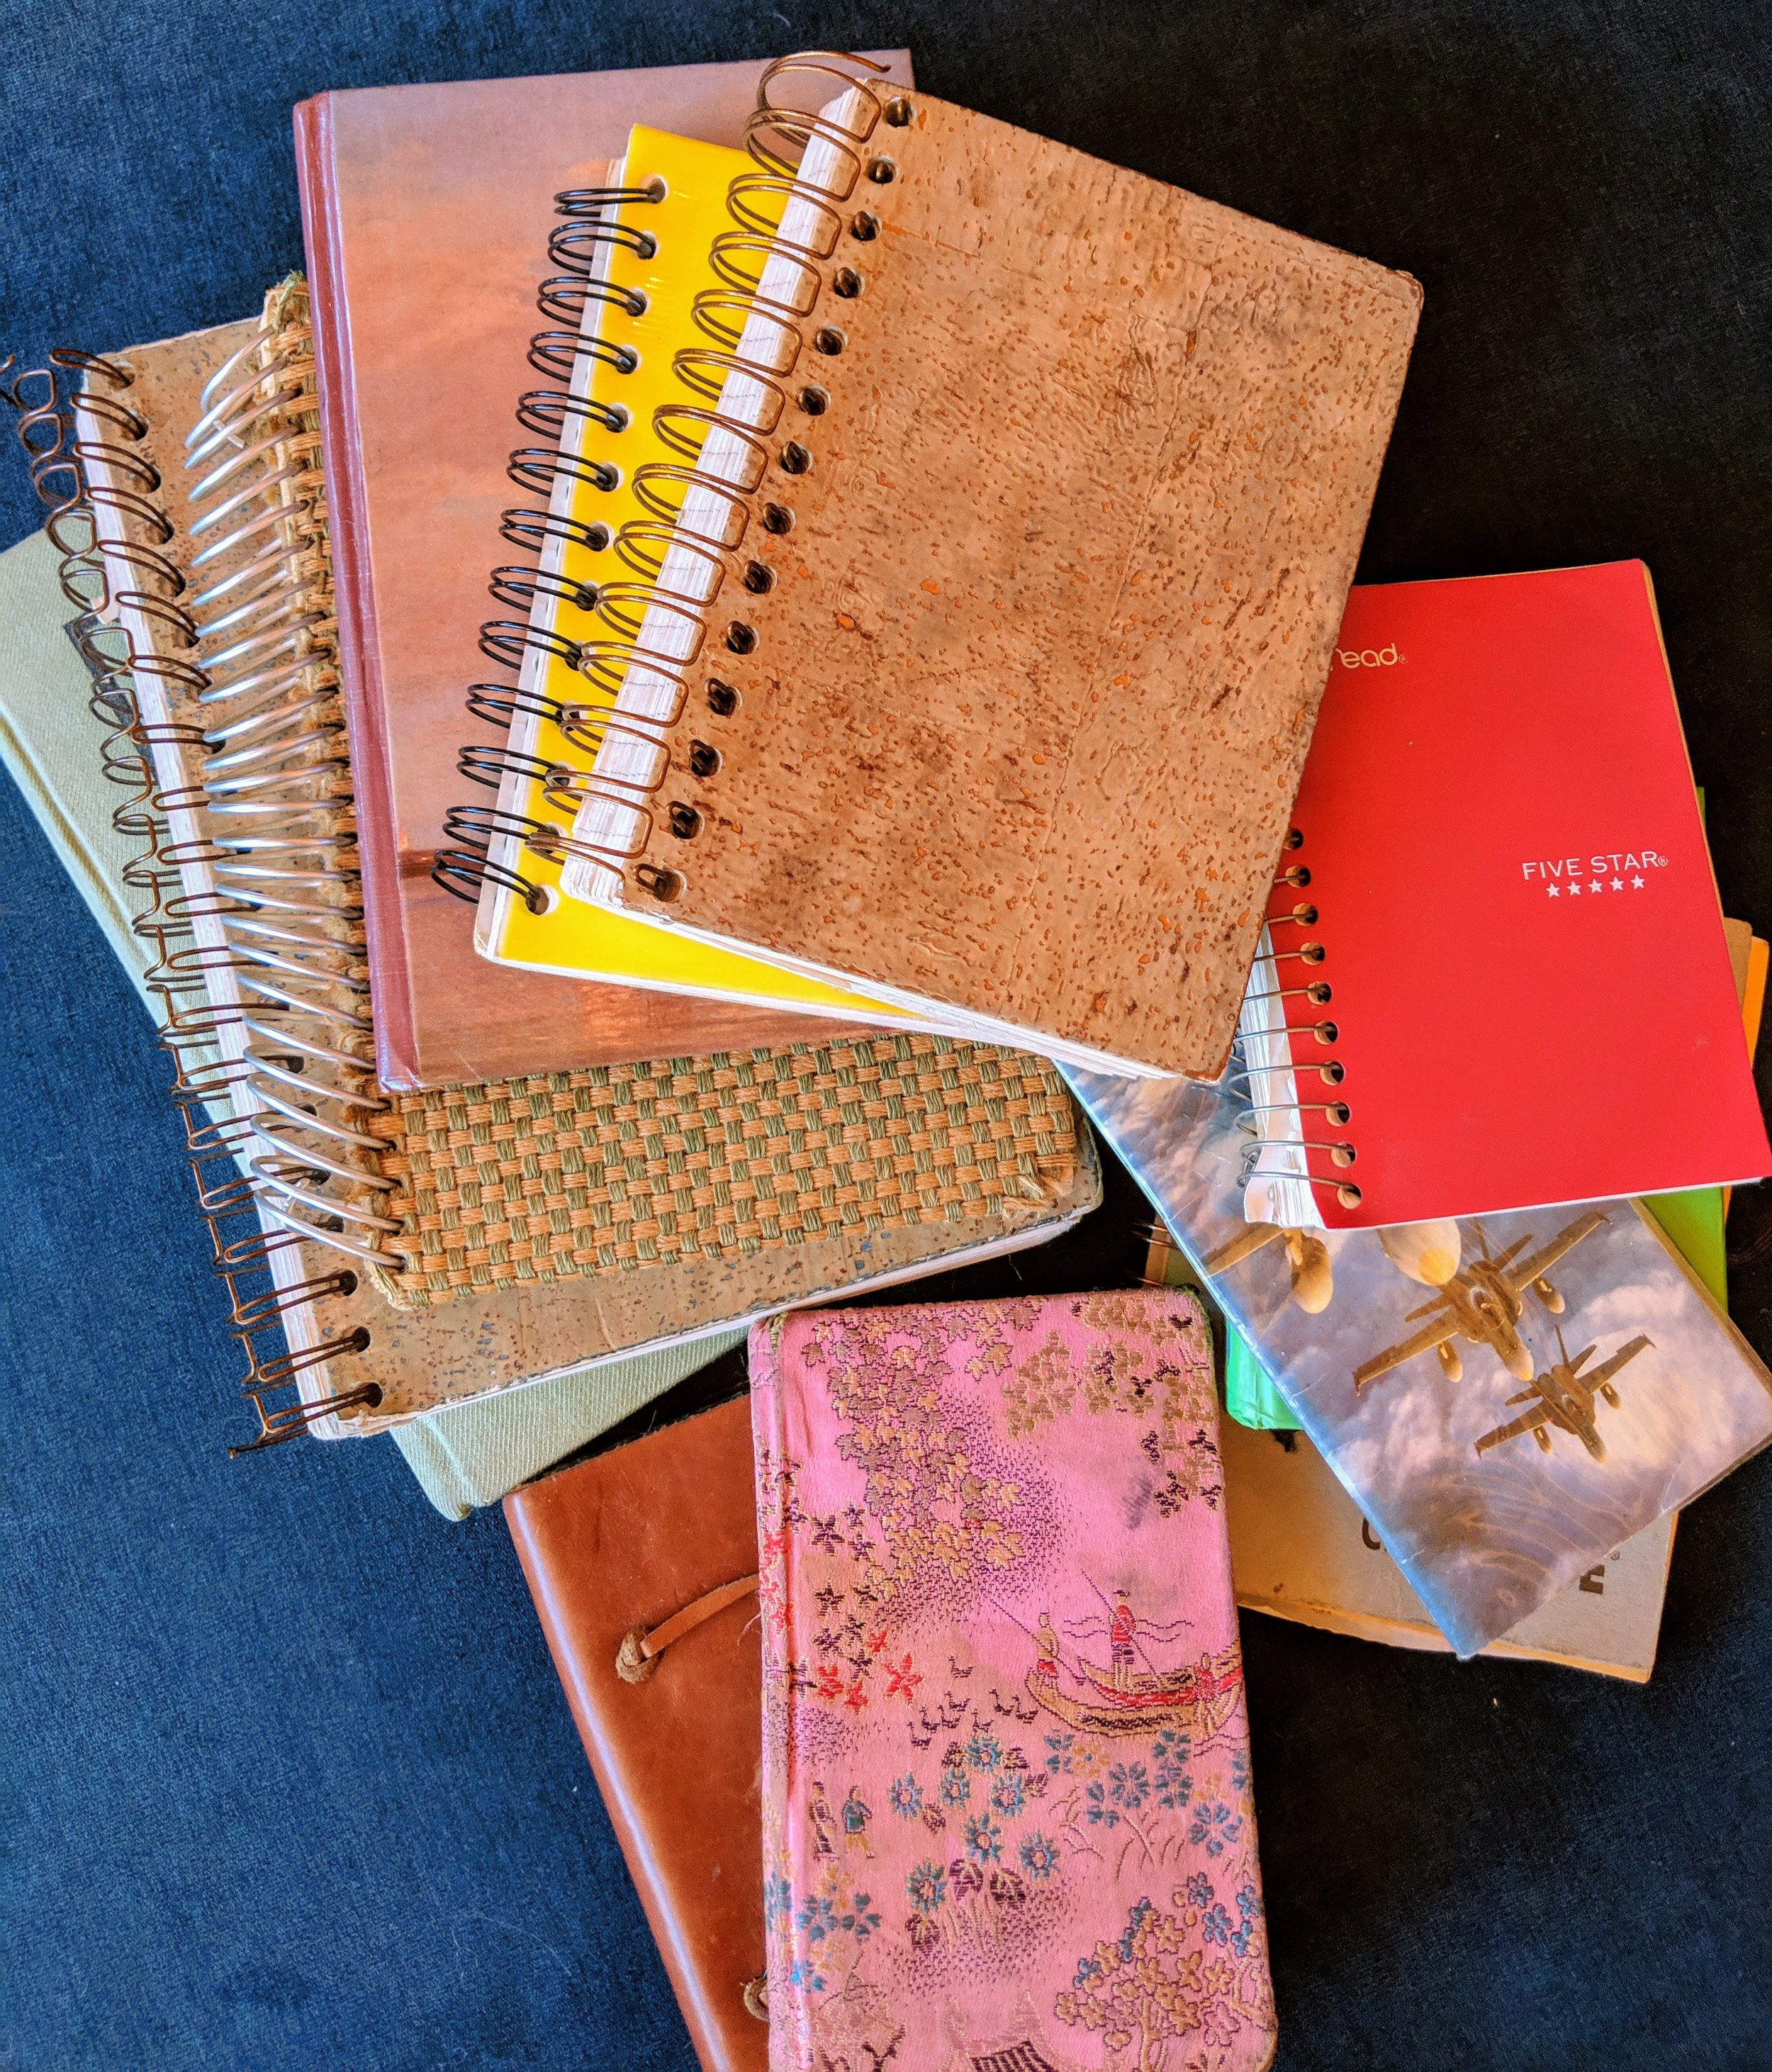 I have a clear preference for spiral-bound journals. Also, in case you were wondering, these journals are equal parts moany and hilarious.